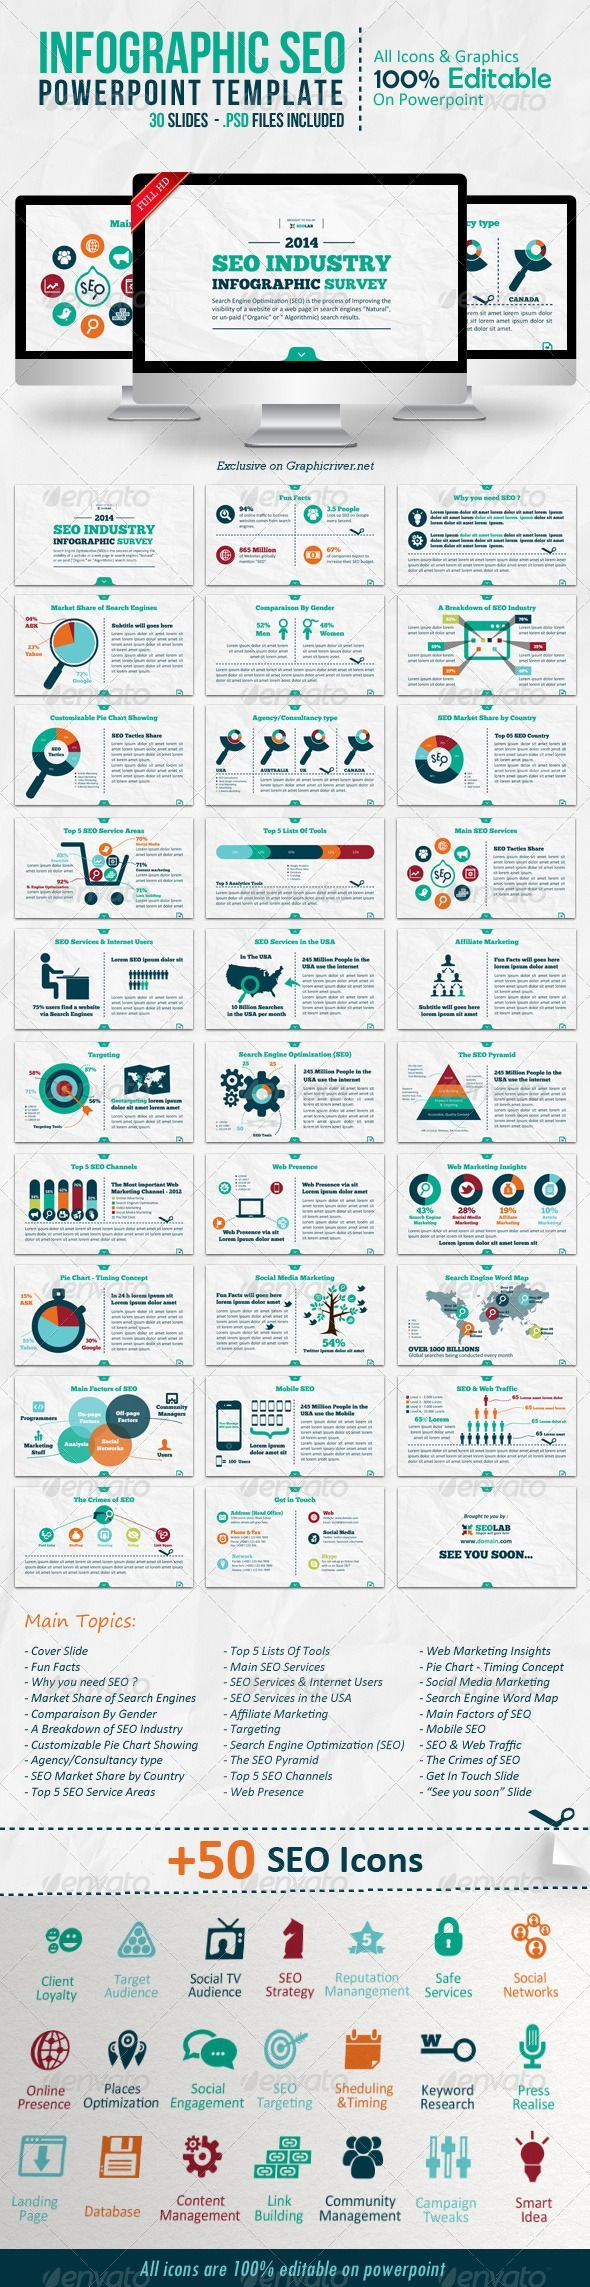 Presentation Templates - Infographic SEO Powerpoint Template | GraphicRiver #infographics